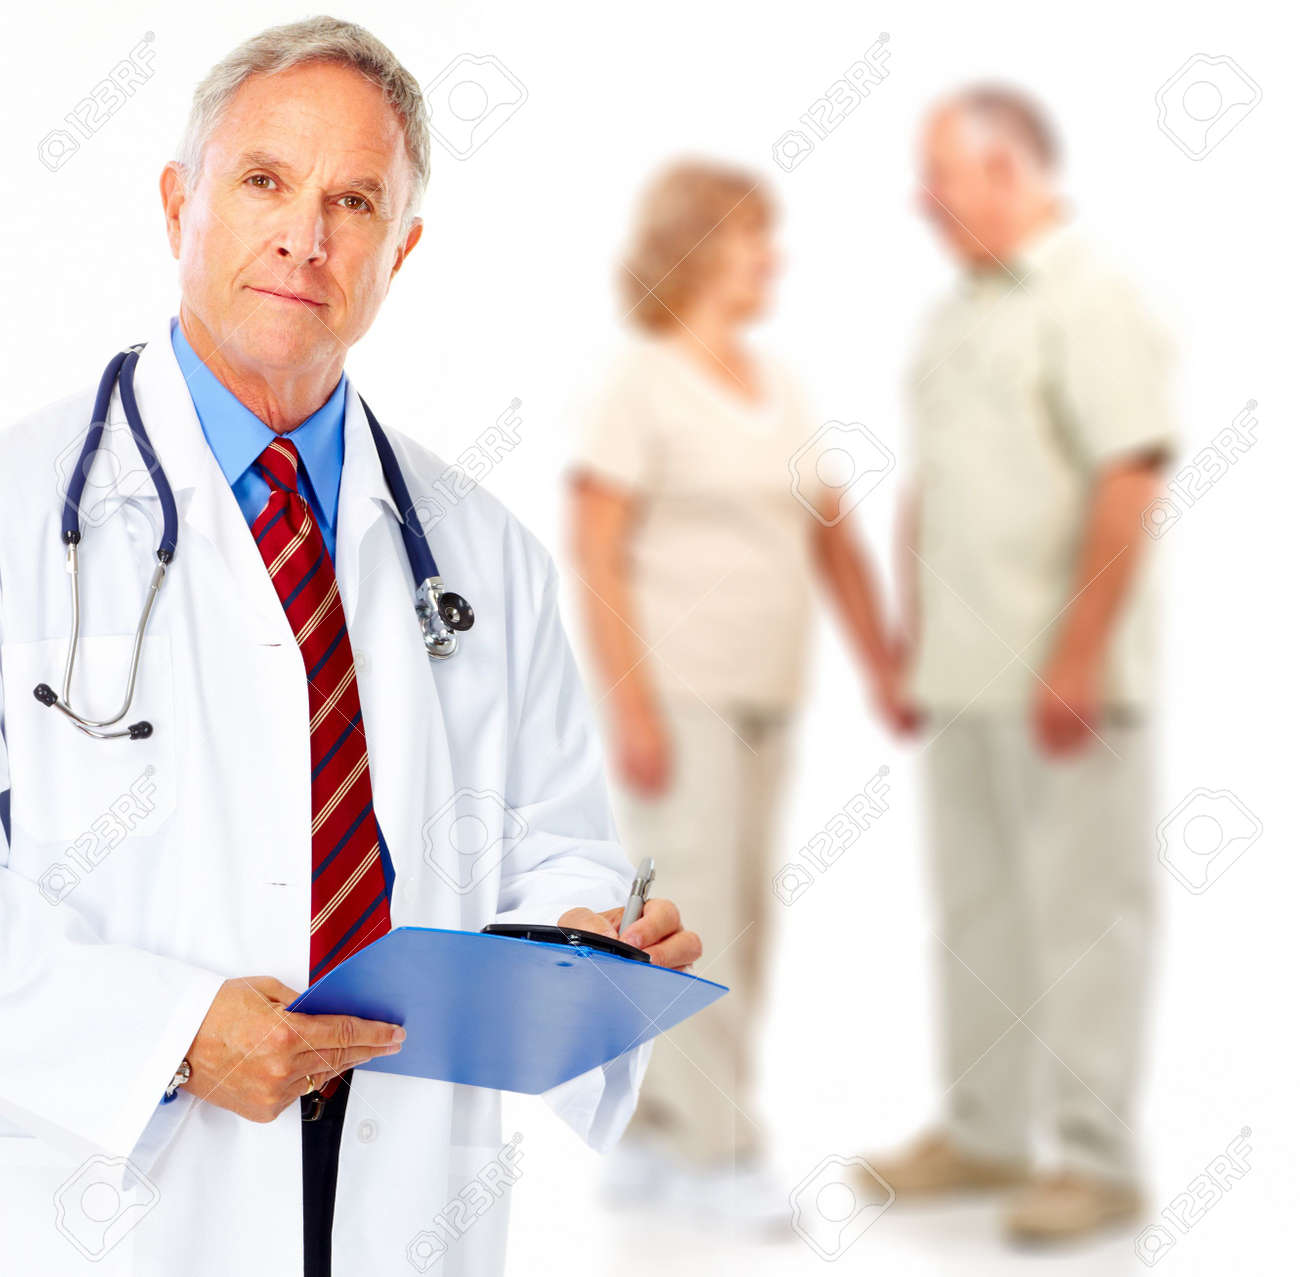 Smiling medical doctor with stethoscope and elderly couple Stock Photo - 5713452